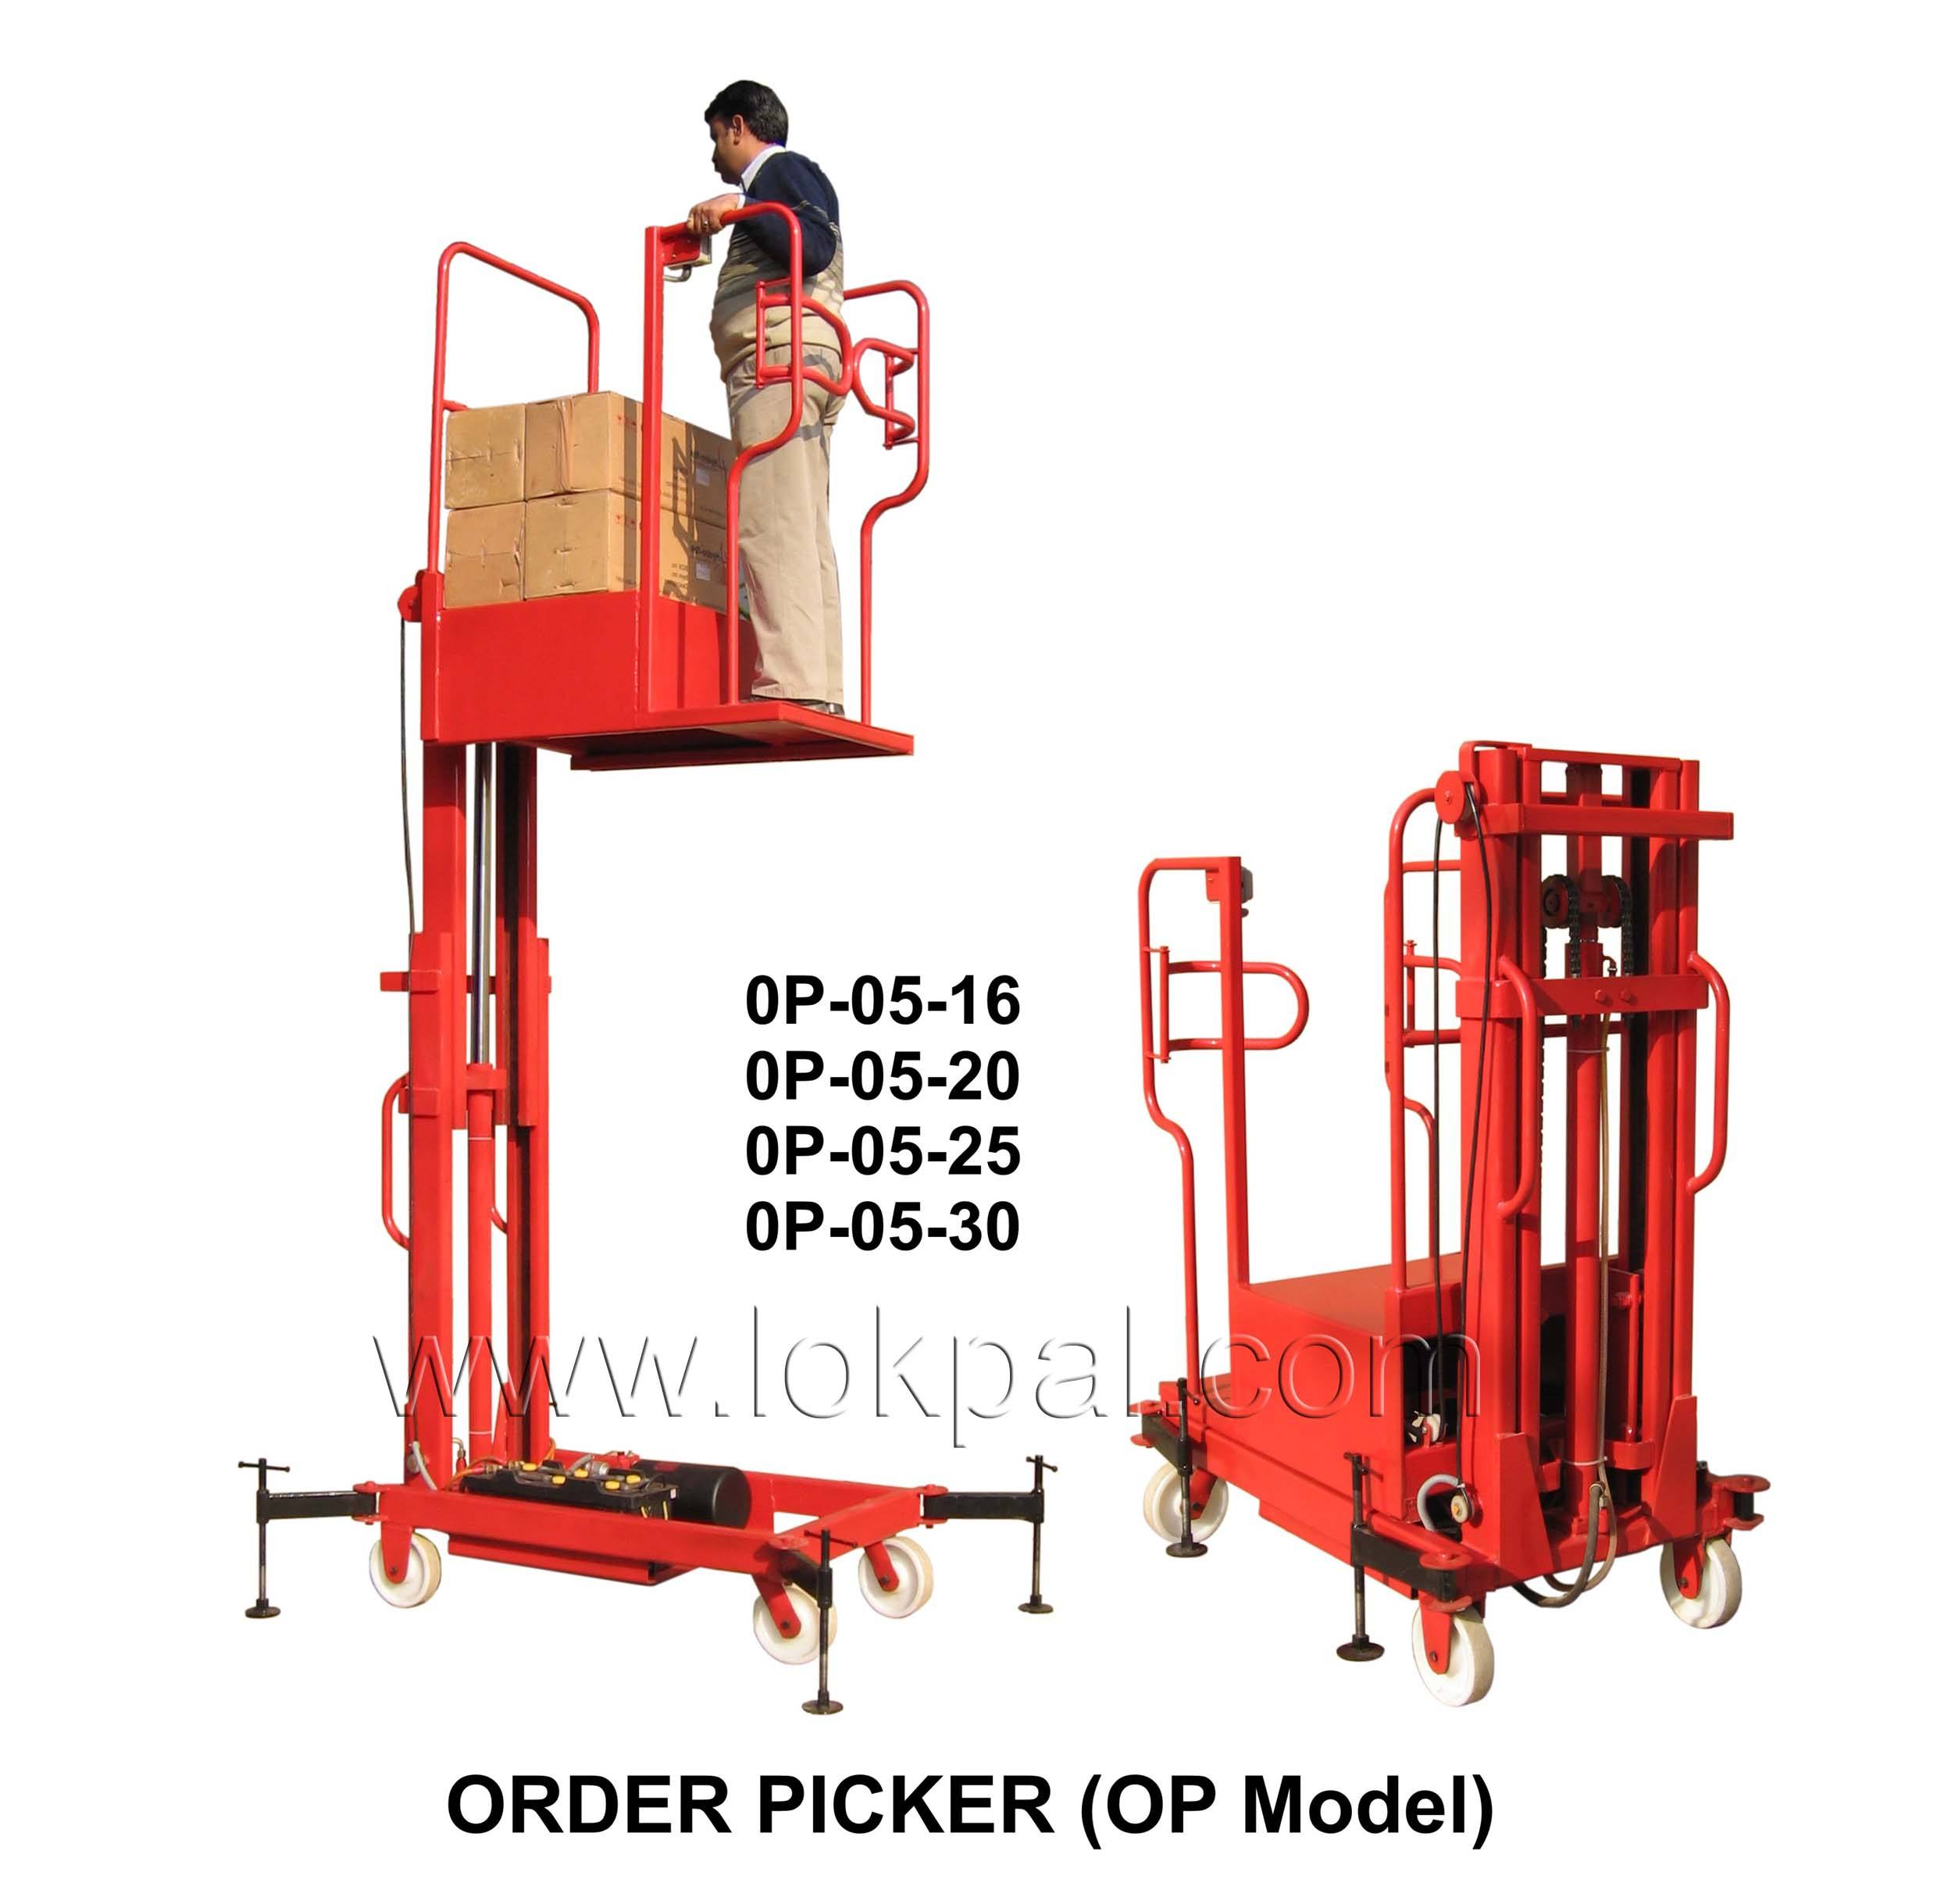 Order Picker, Manufacturer, Good Lifts Supplier, India